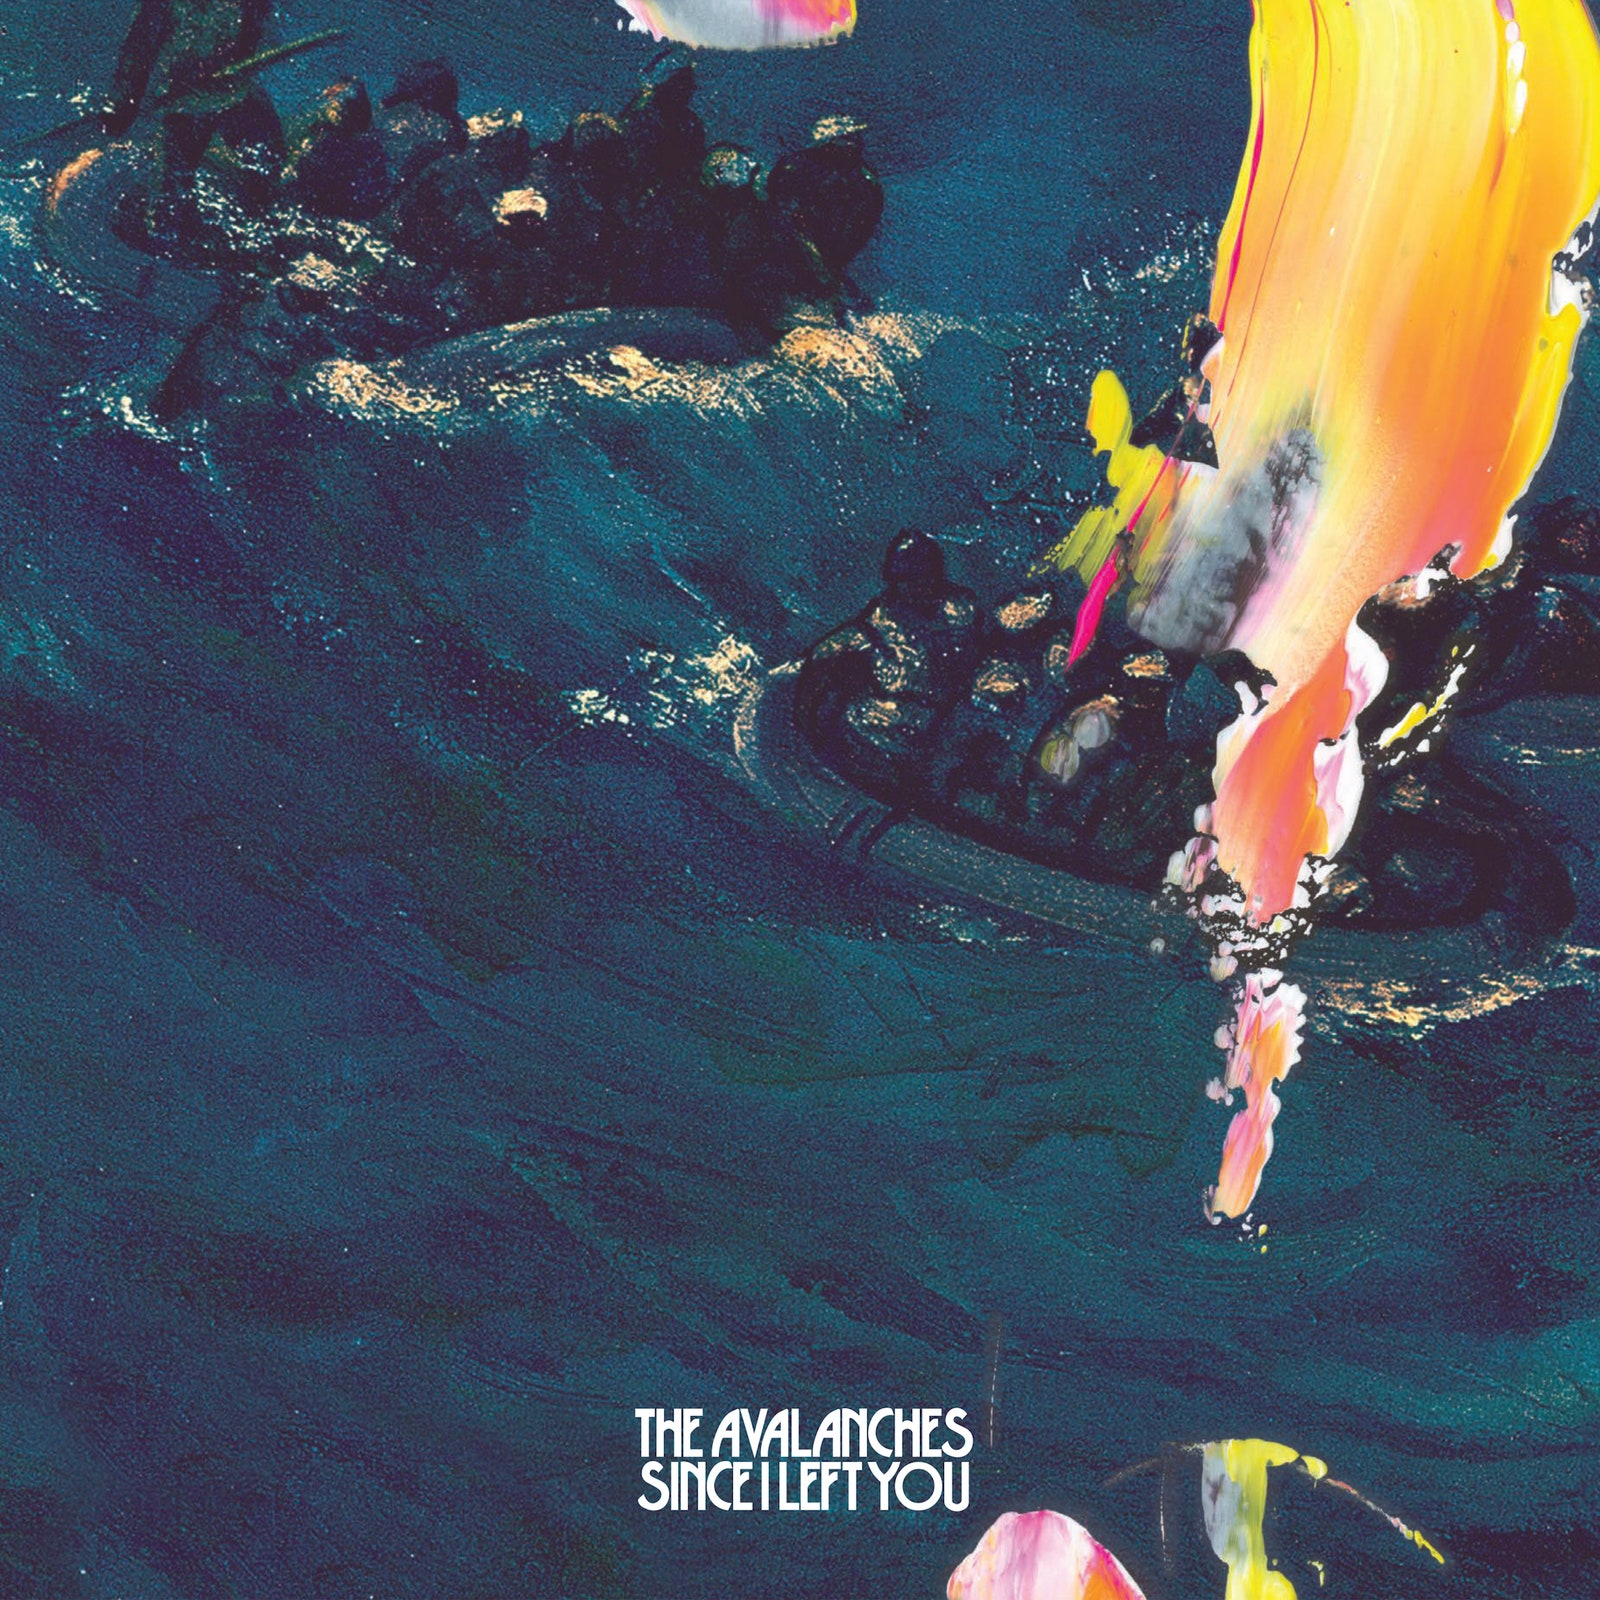 The Avalanches Since I Left You  20th Anniversary Deluxe Edition